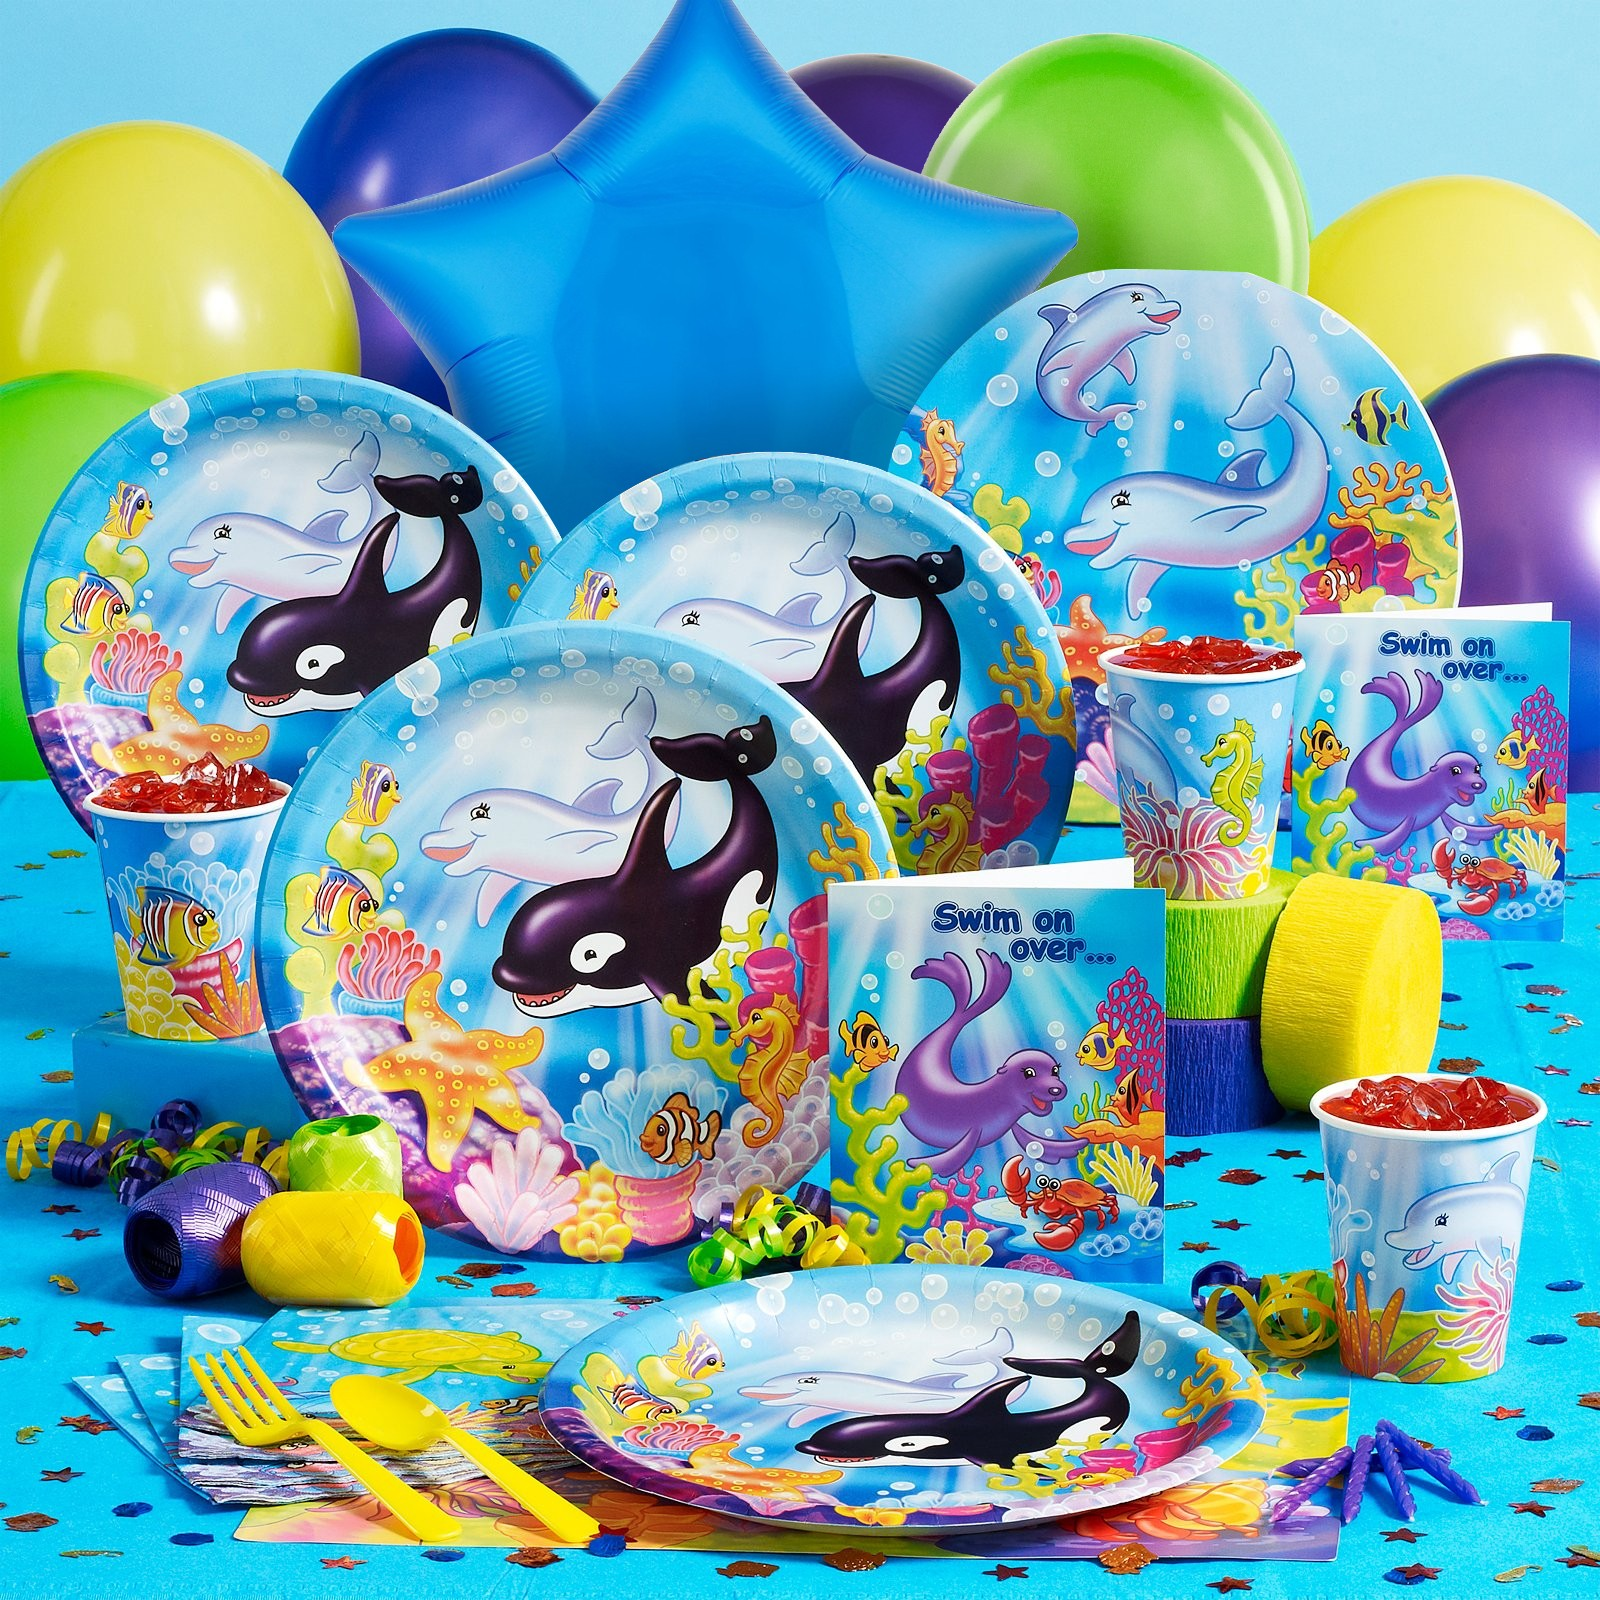 cheap birthday activities ; bbe7fd4420ad8856f3d9bf03523d9728